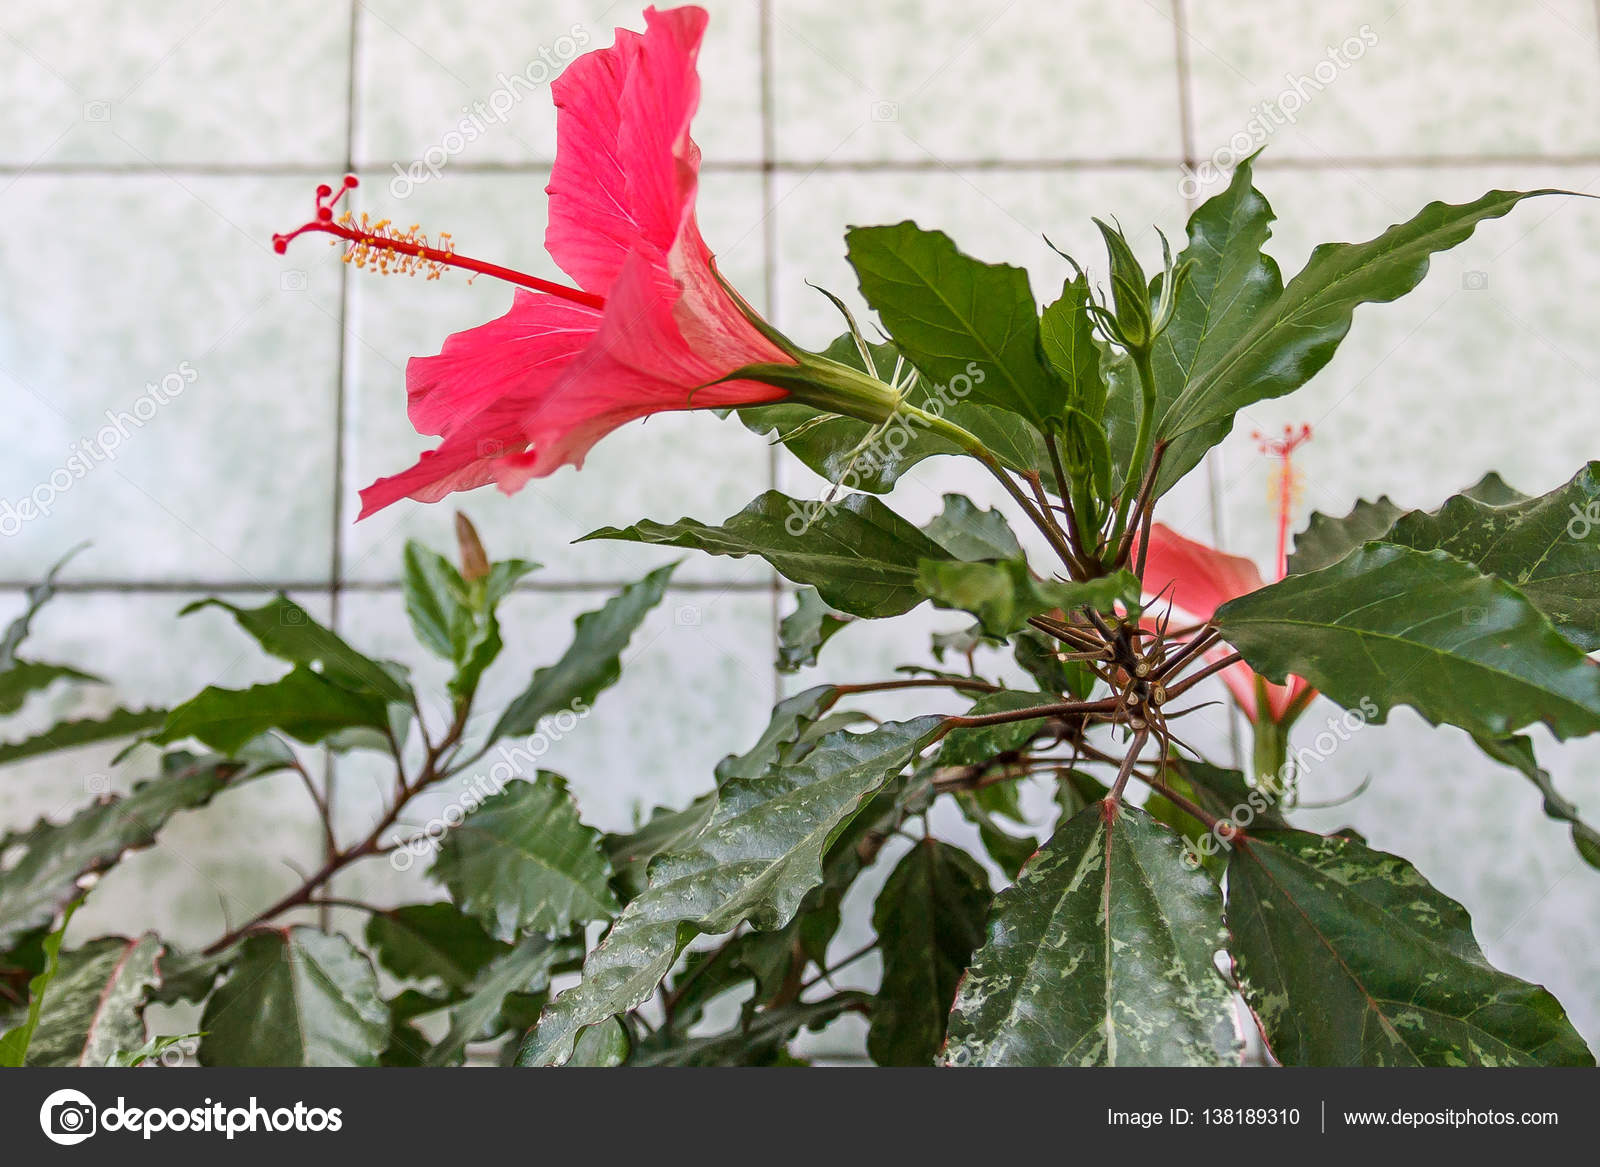 How Many Stamens Does A Gumamela Flower Have Hd Image Flower And